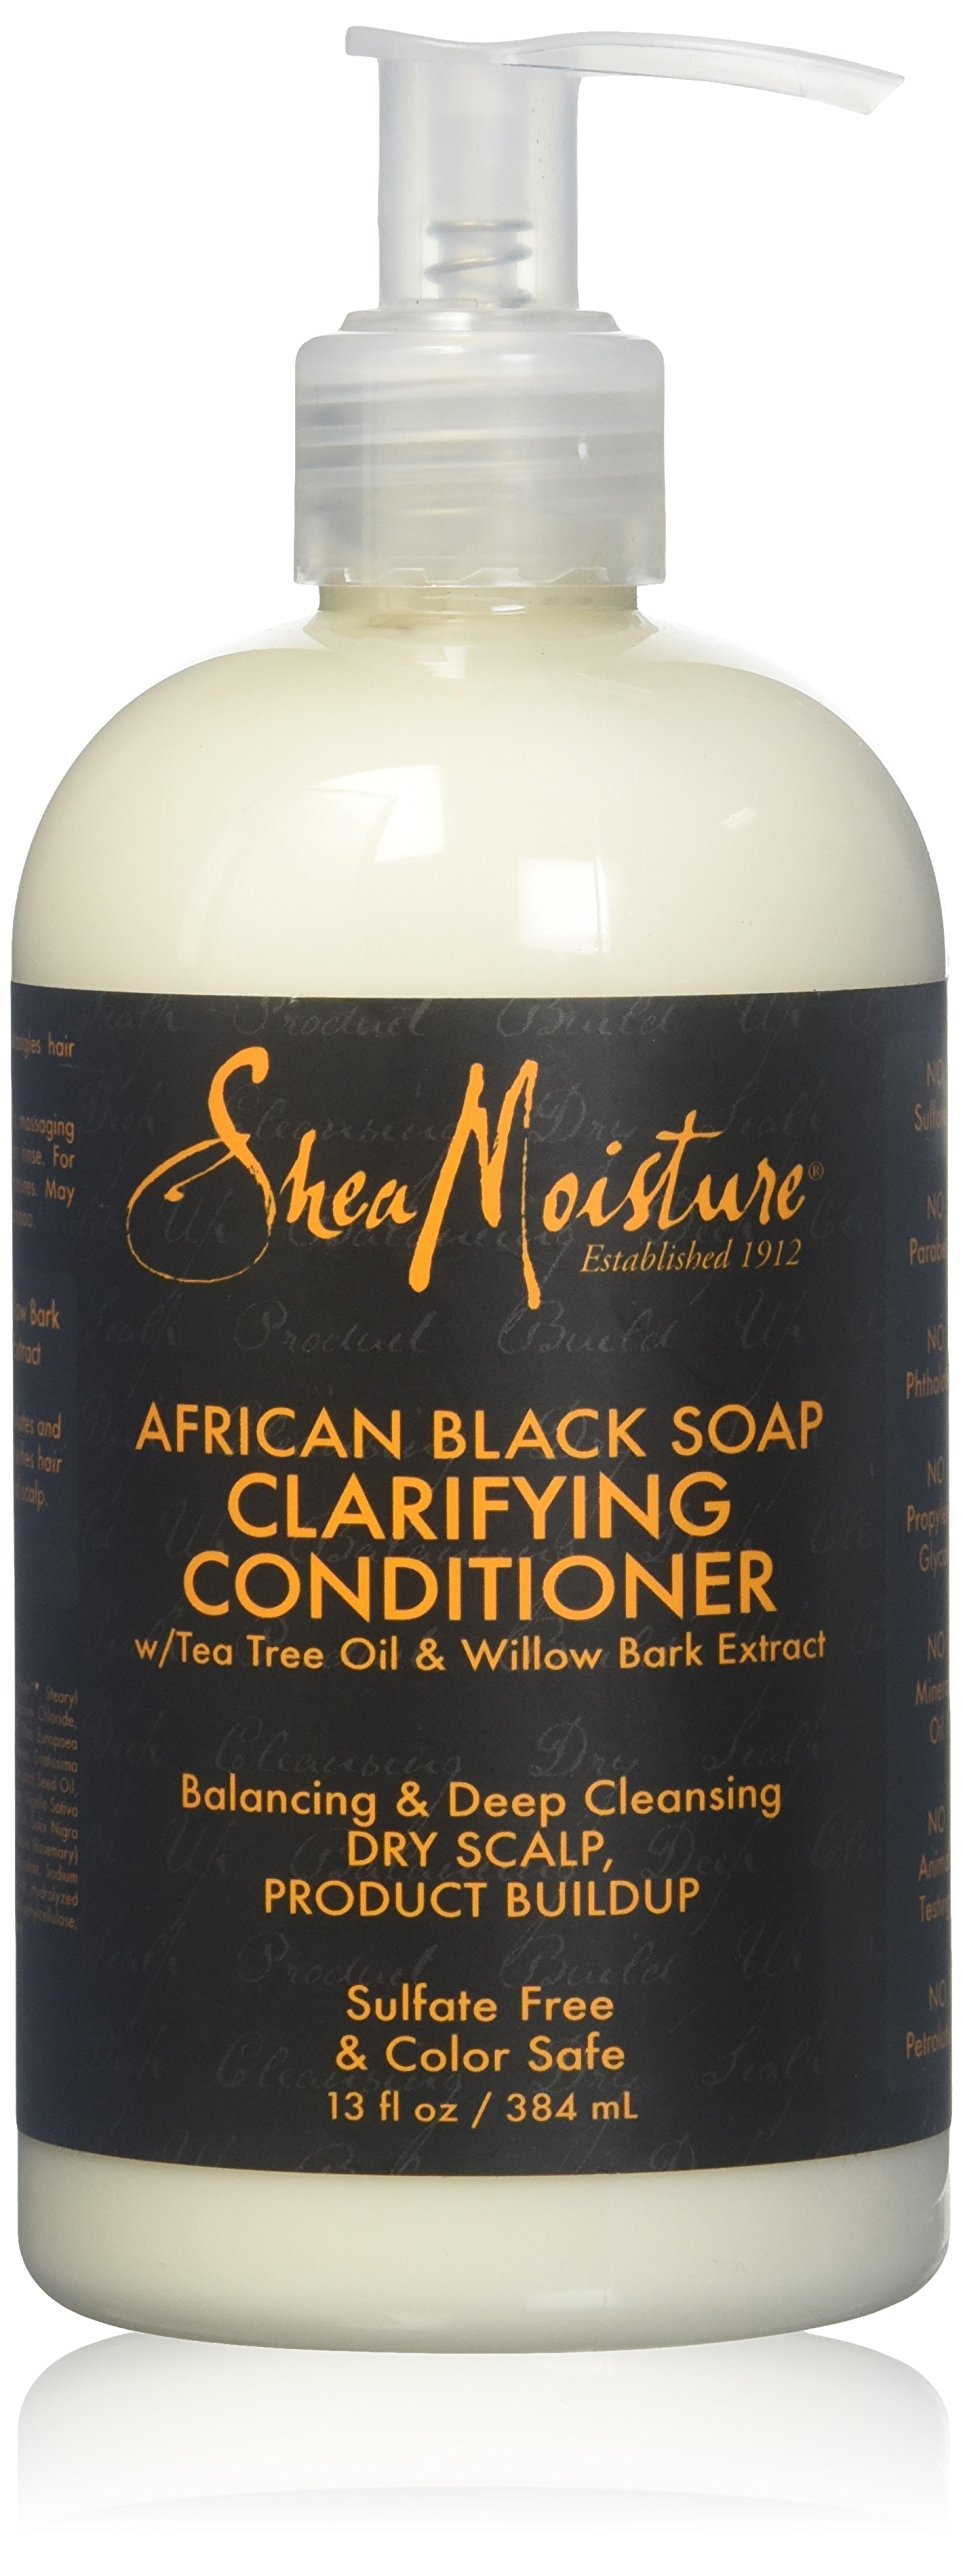 Shea Moisture African Black Conditioner Balance 12 Ounce Pump (354ml) (2 Pack)